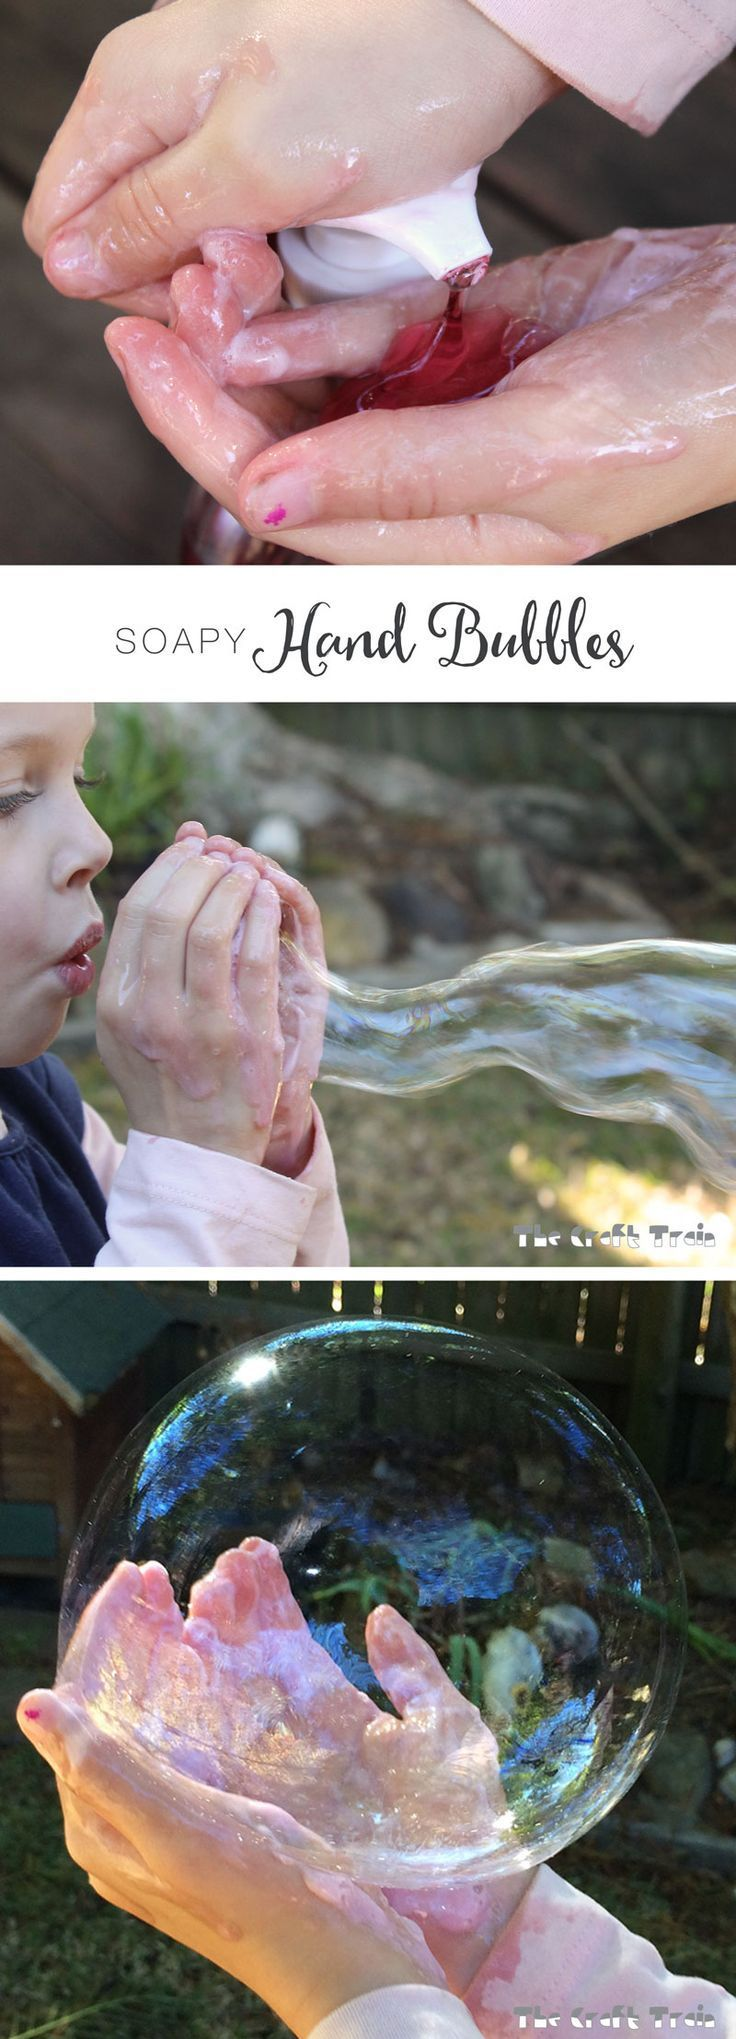 Soapy hand bubbles that you can catch created with liquid hand pump soap